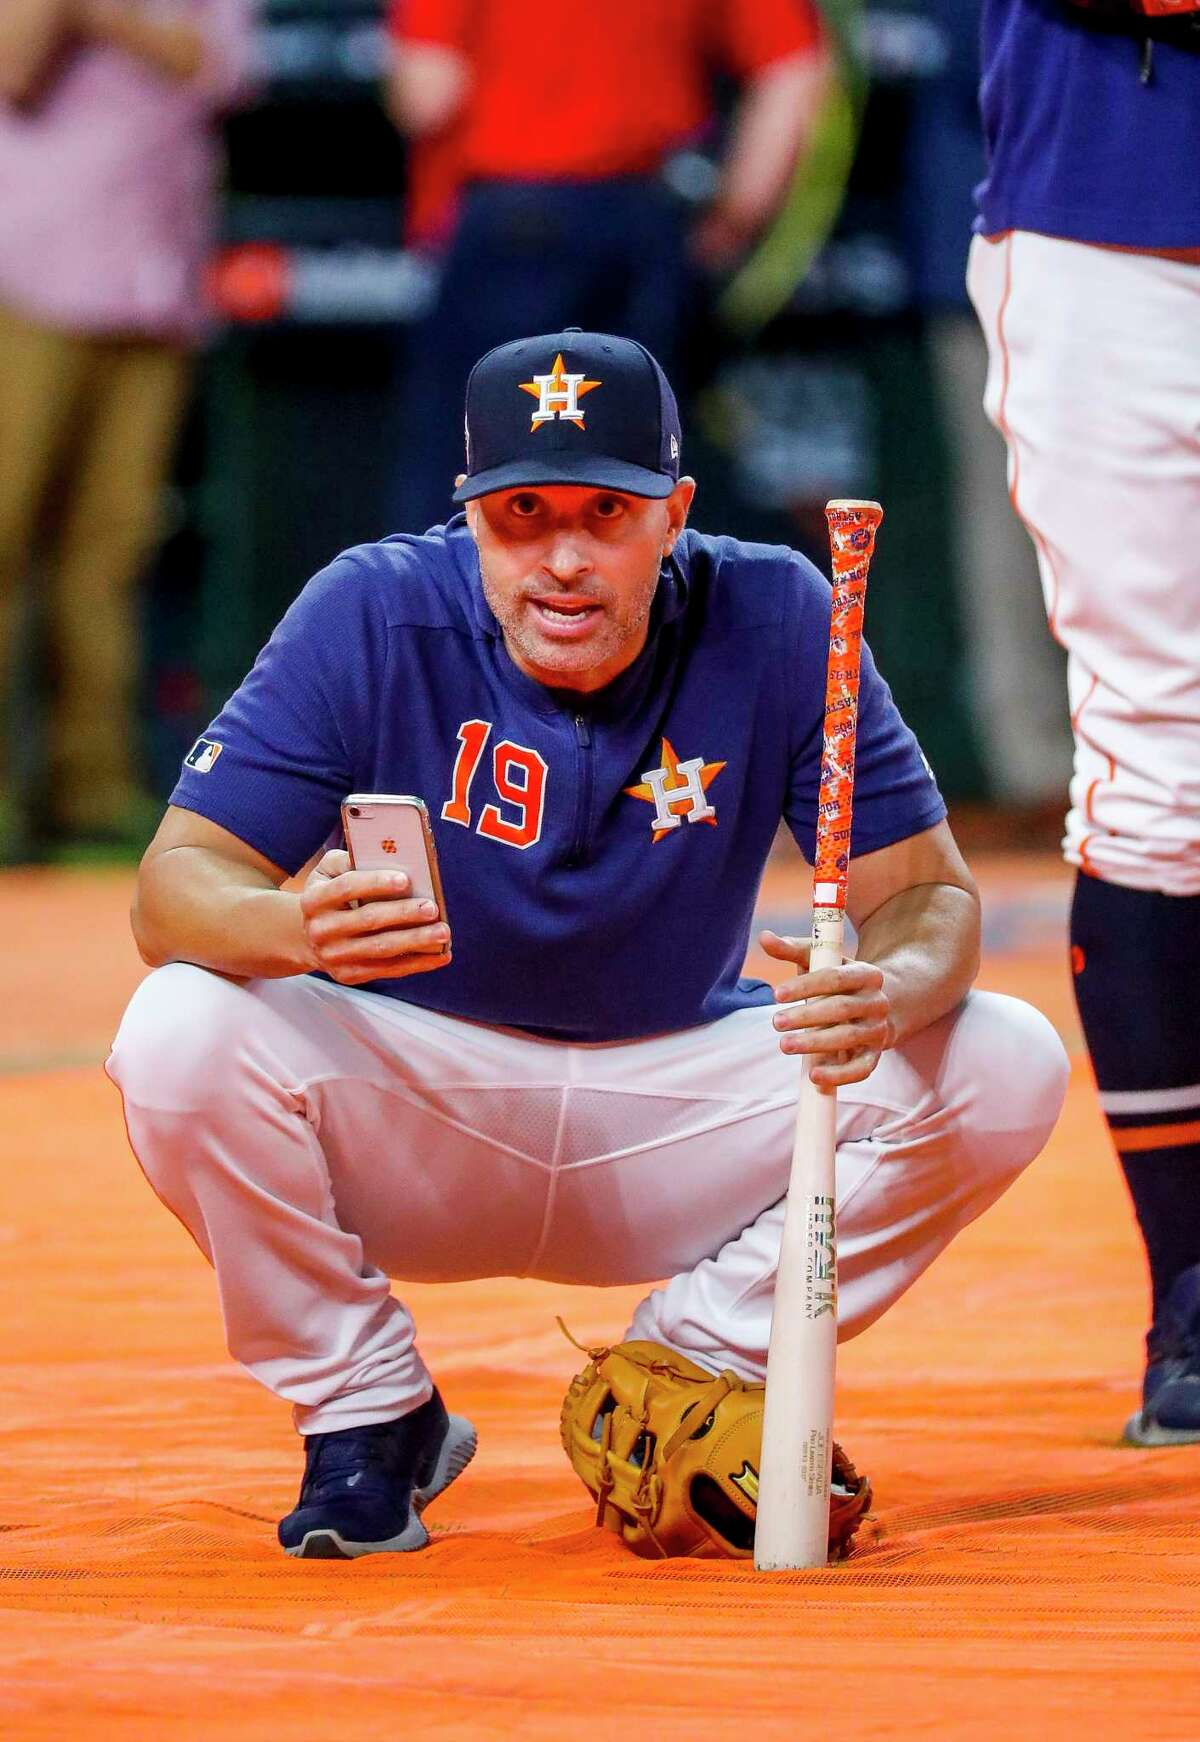 Houston Astros bench coach Joe Espada (19) watches during batting practice before Game 6 of the World Series at Minute Maid Park on Tuesday, Oct. 29, 2019, in Houston.